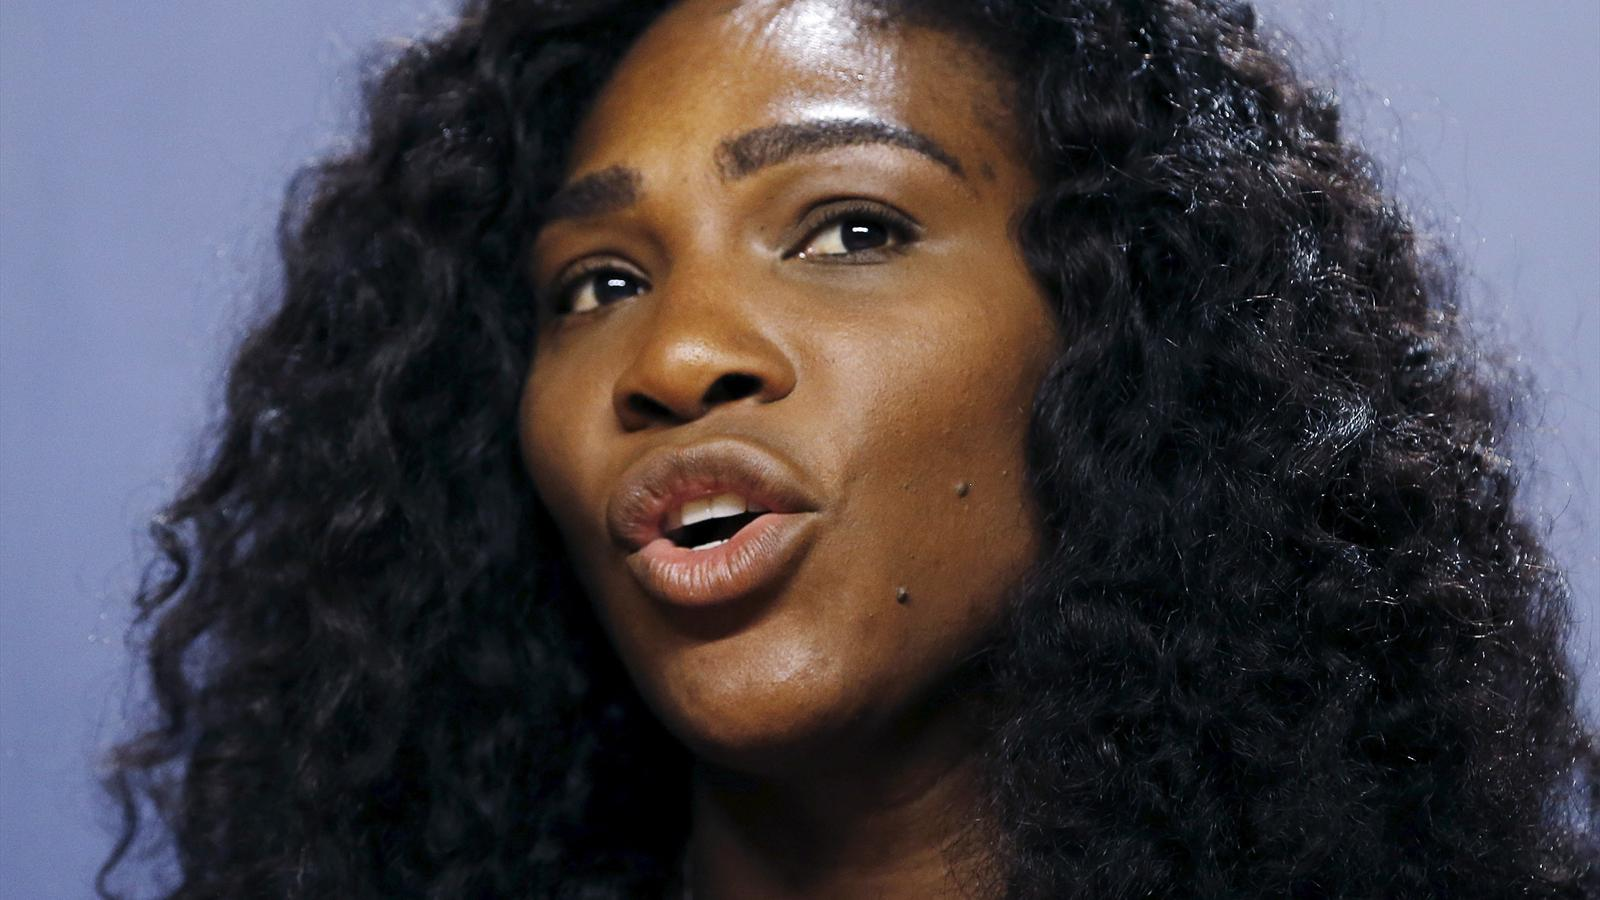 Serena Williams of the U.S. speaks during a news conference at the USTA Billie Jean King National Tennis Center ahead of the 2015 U.S. Open tennis tournament in New York